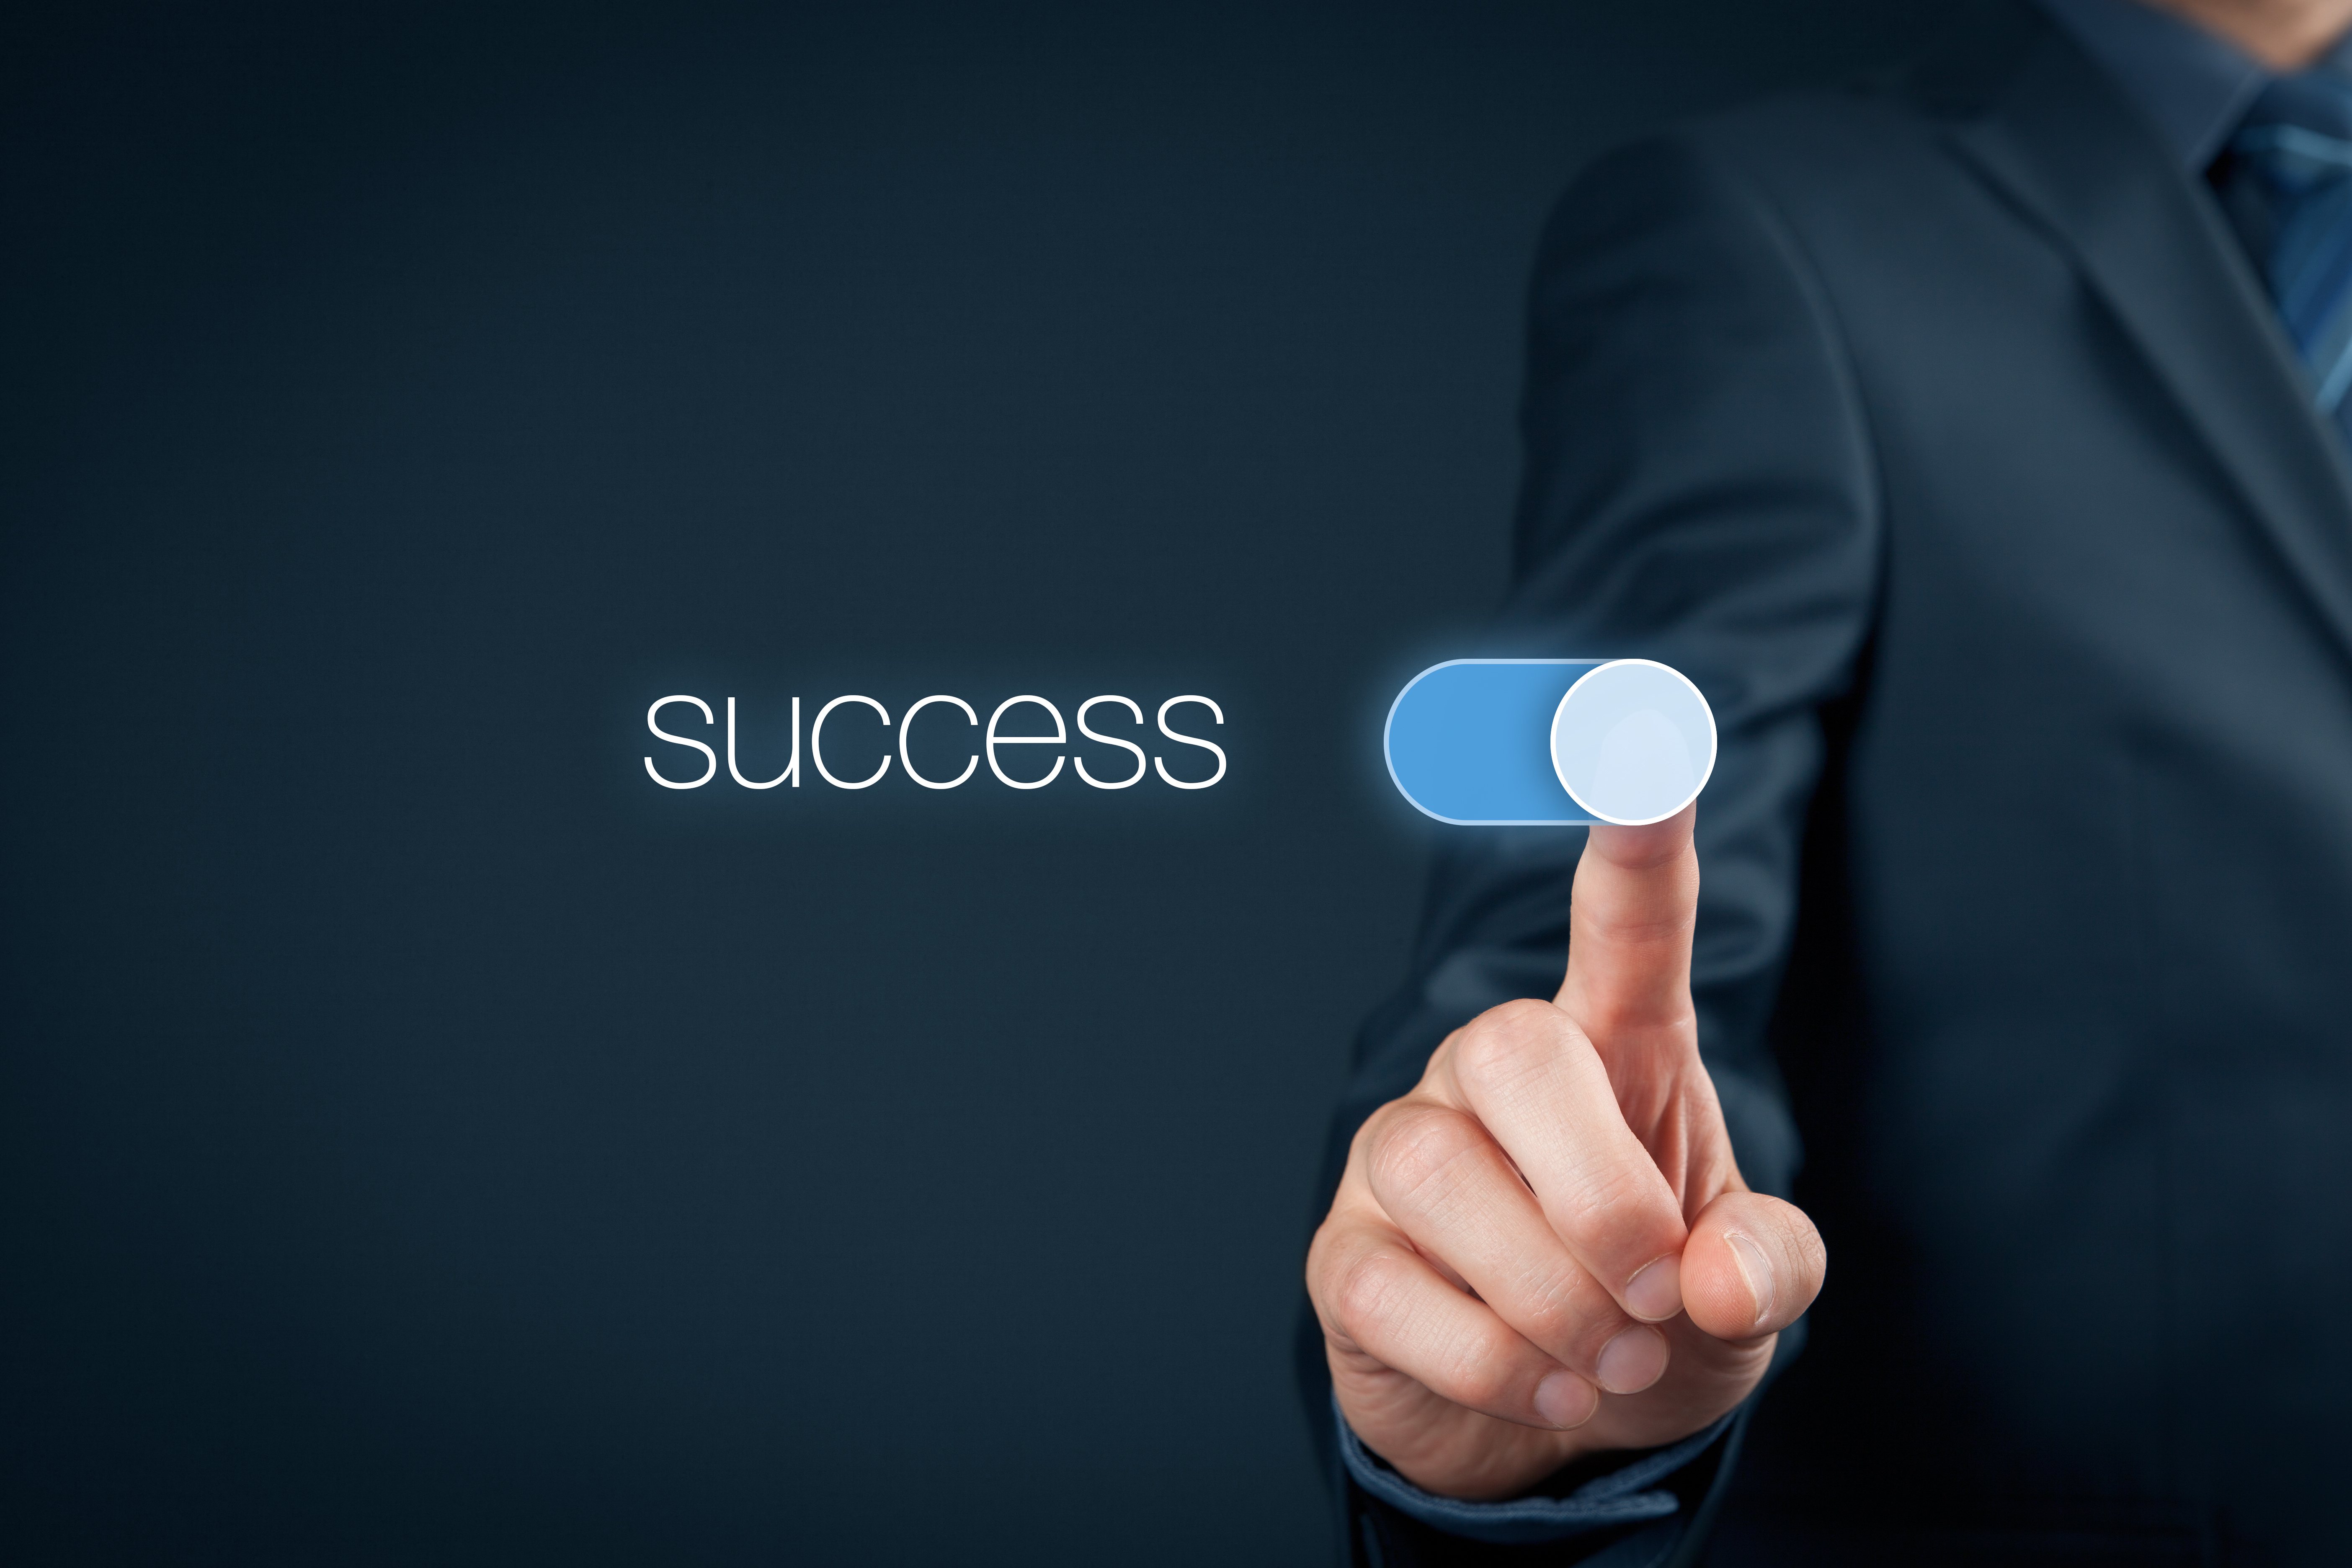 Five Ways For New Sales People To Find Success